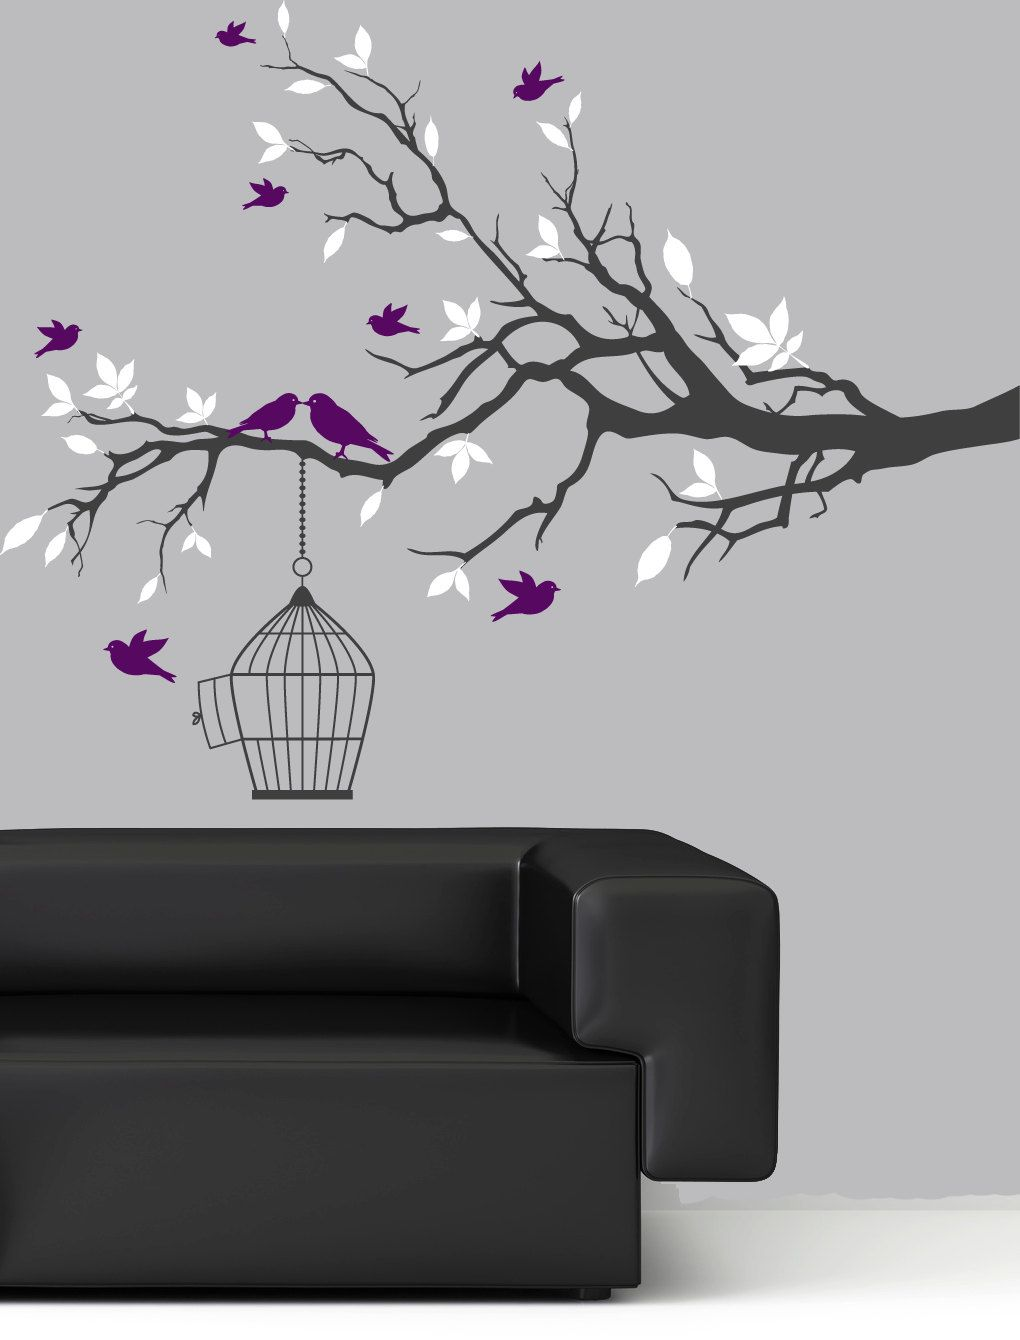 Wall Decal   Tree Branch Wall Art Sticker Purple Birds White Leaf Vinyl Wall  Decals 62